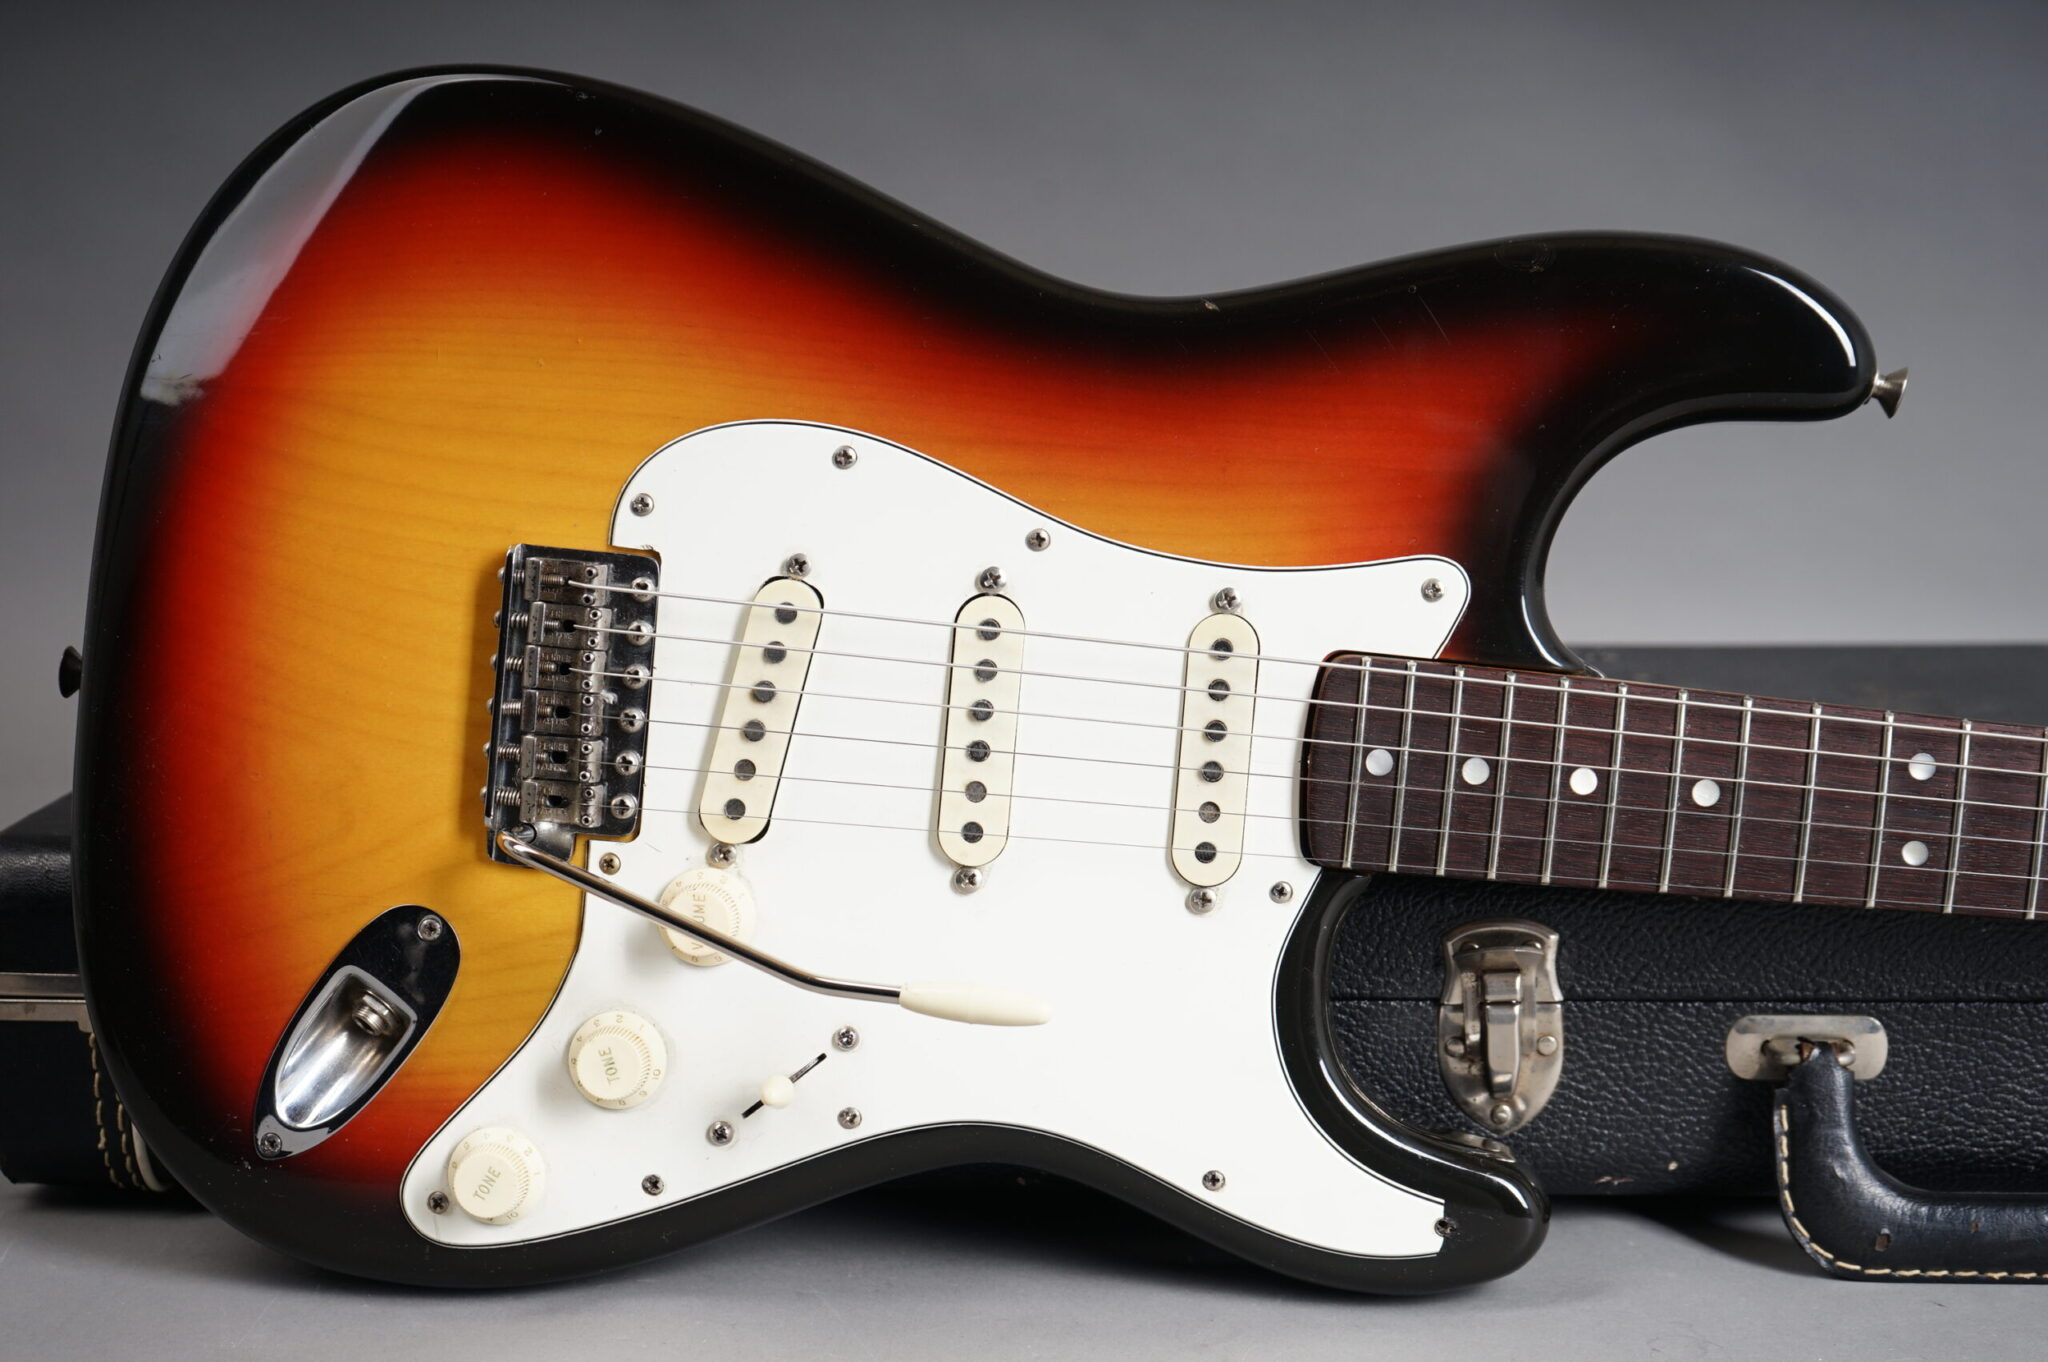 https://guitarpoint.de/app/uploads/products/1971-fender-stratocaster-sunburst/1971-Fender-Stratocaster-Sunburst-322861-8-scaled-2048x1362.jpg